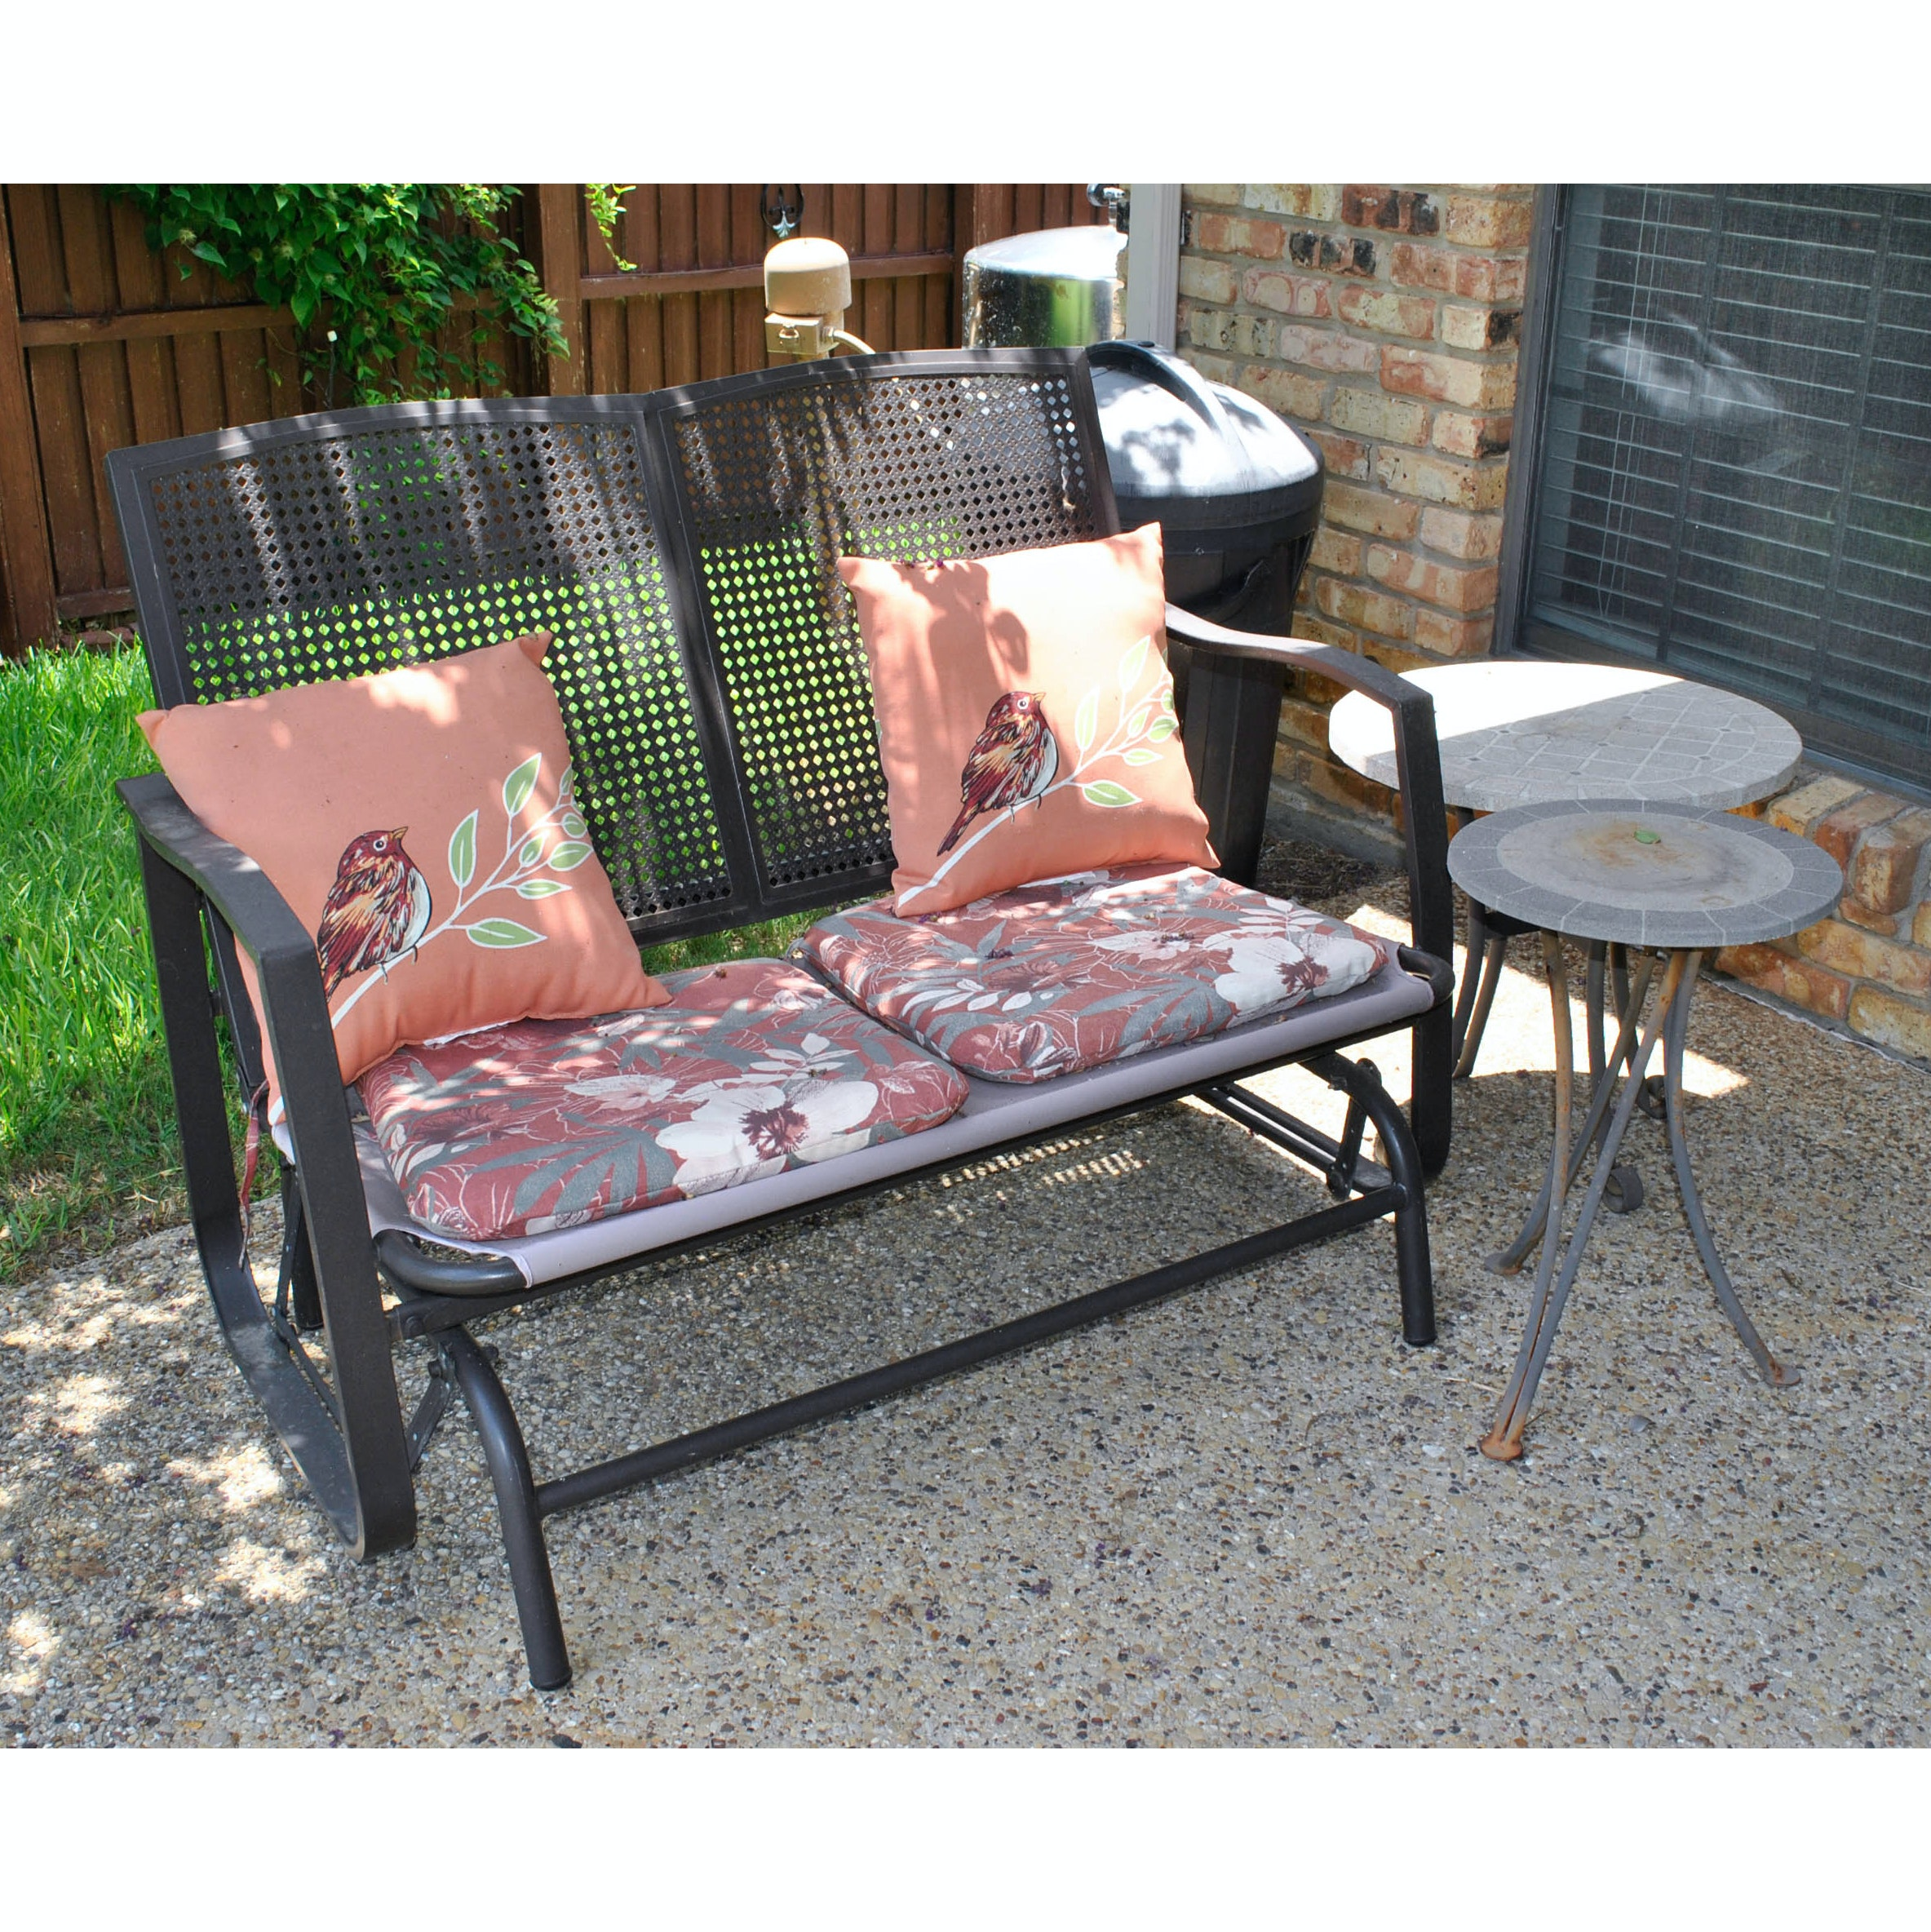 Outdoor Glider Bench and Accent Tables